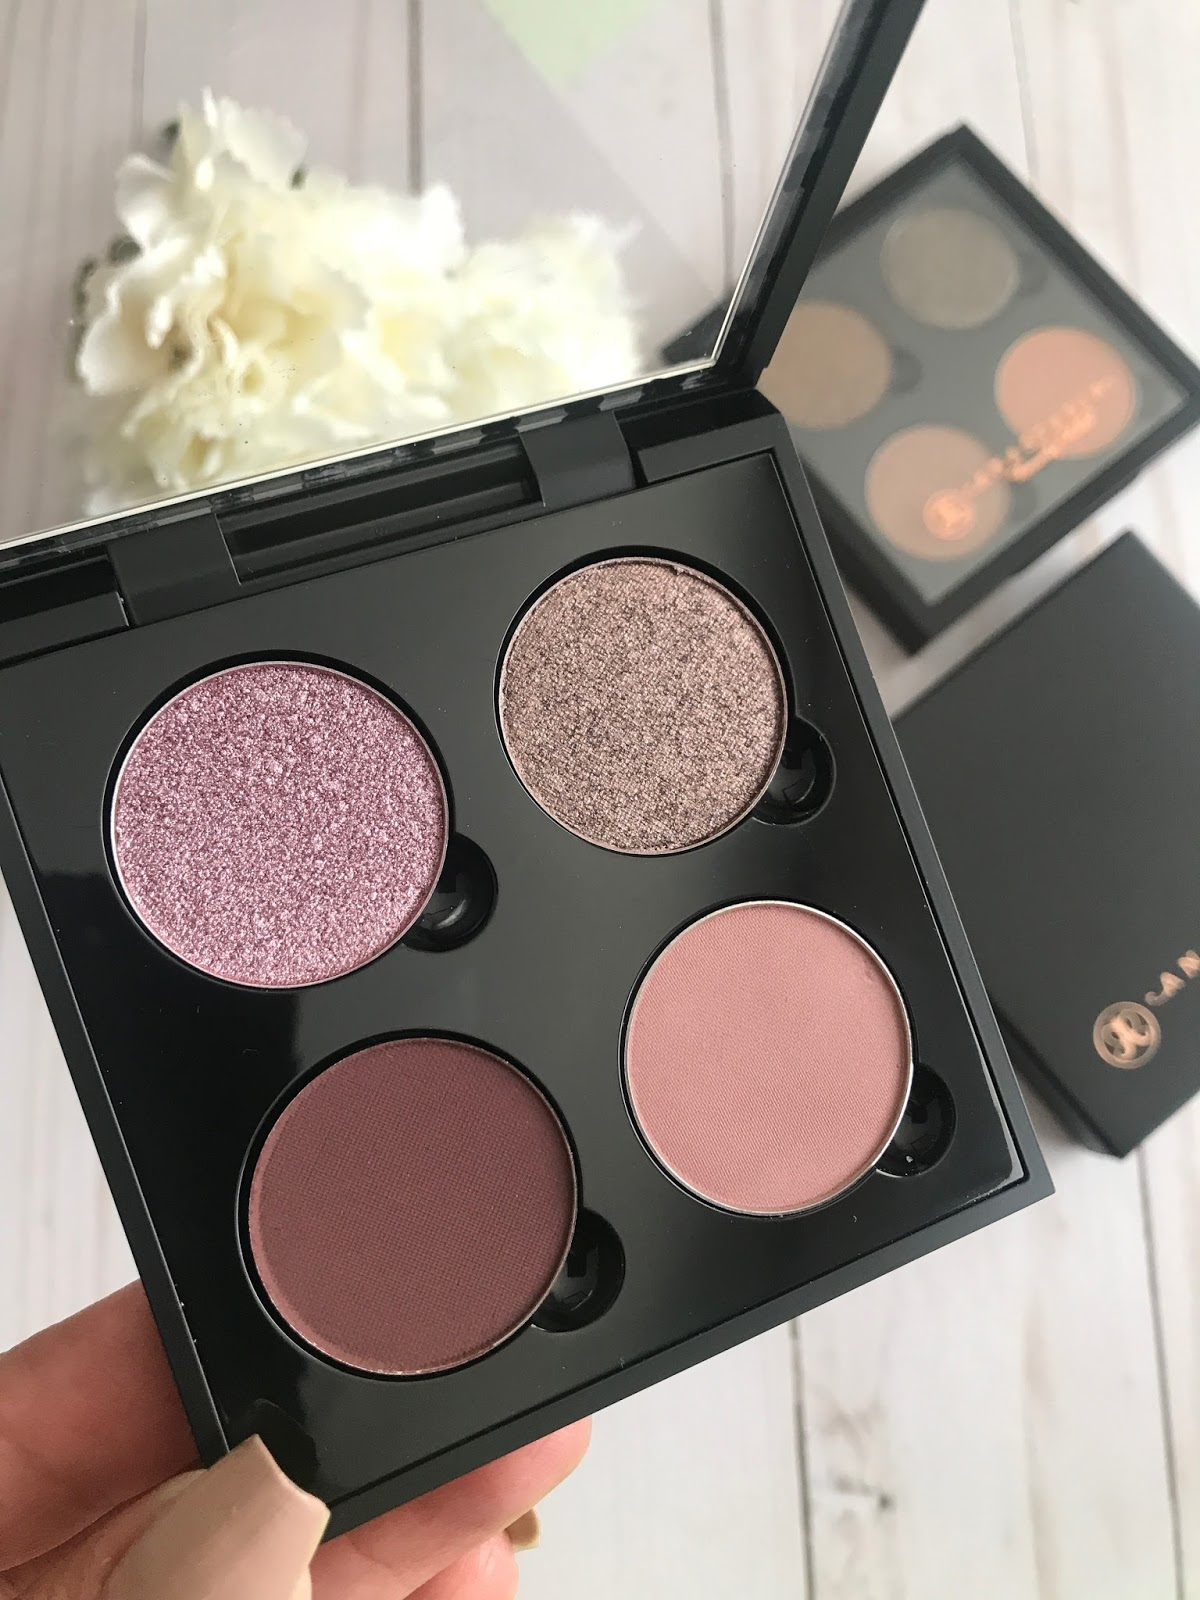 Im A Very Big Fan Of ABH Shadow Palettes But Didnt Own Any Their Single Shadows Until This January An Quad Is One Those Things That Always